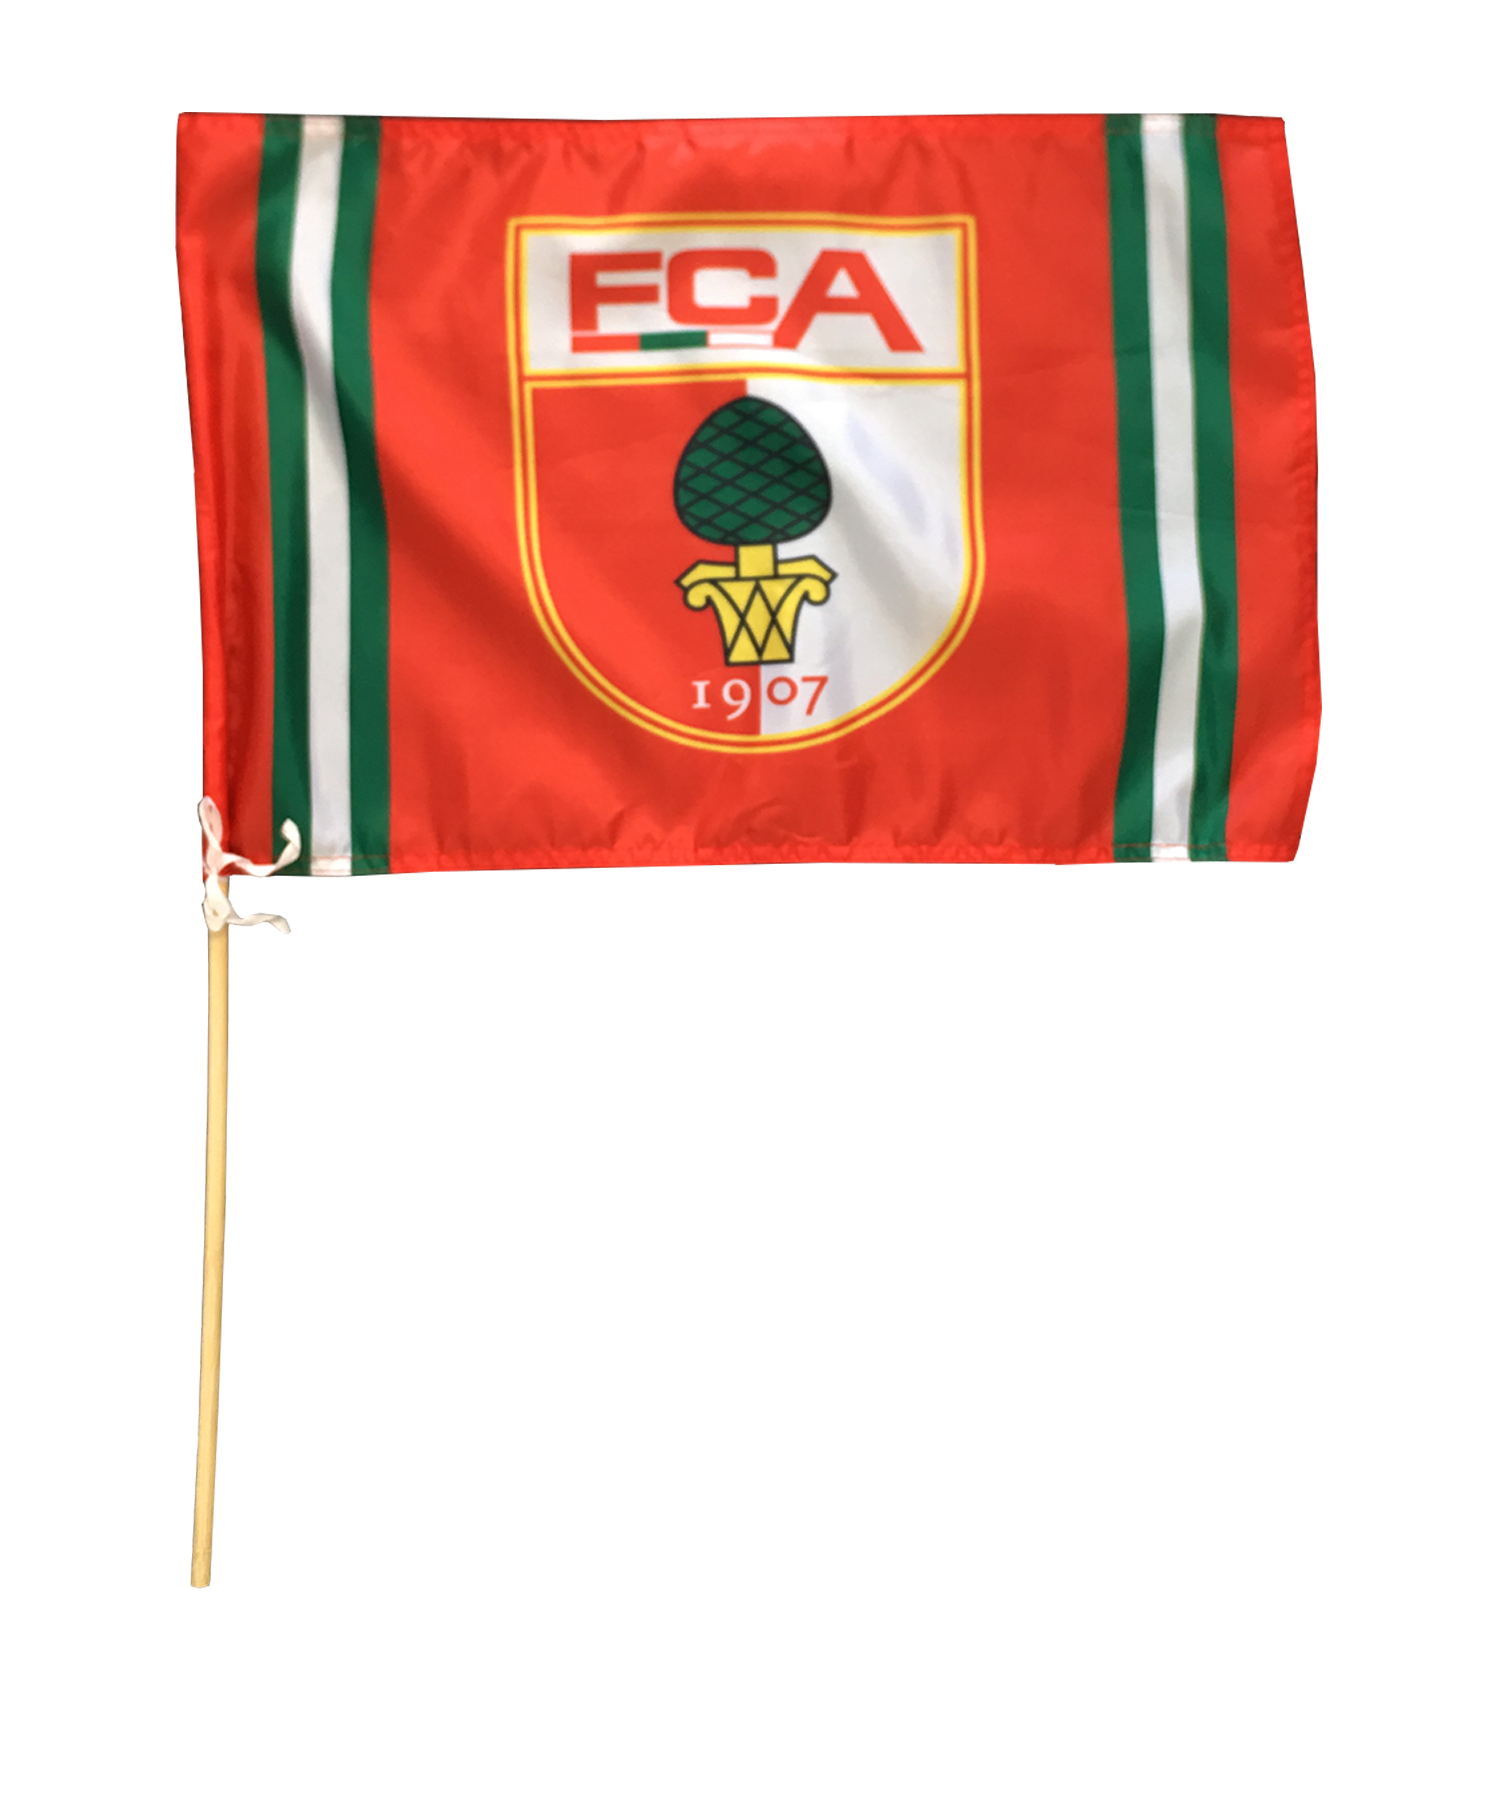 Fahne Rot Weiß Rot: FC Augsburg Fahne Logo 60x80cm Inkl. Holzstock Rot